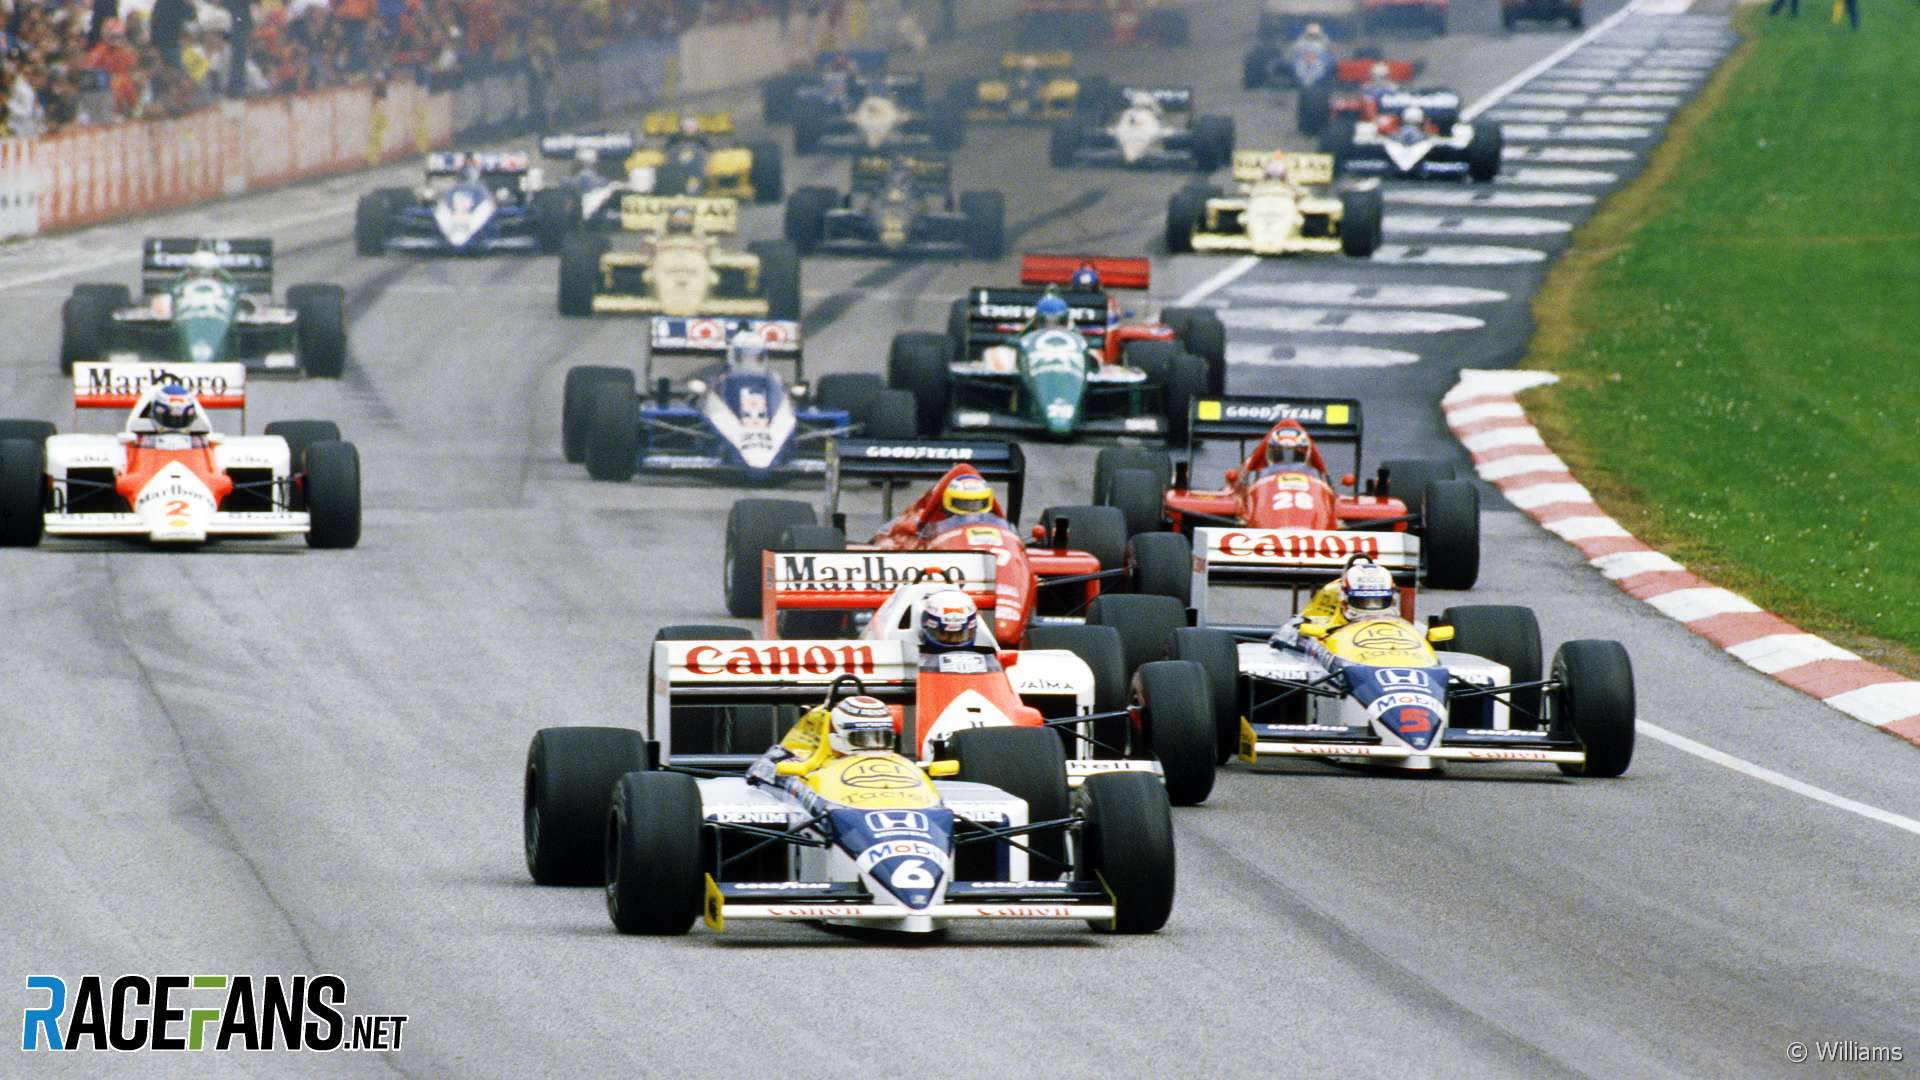 F1 TV will bring new '80s and '90s race video to fans - RaceFans